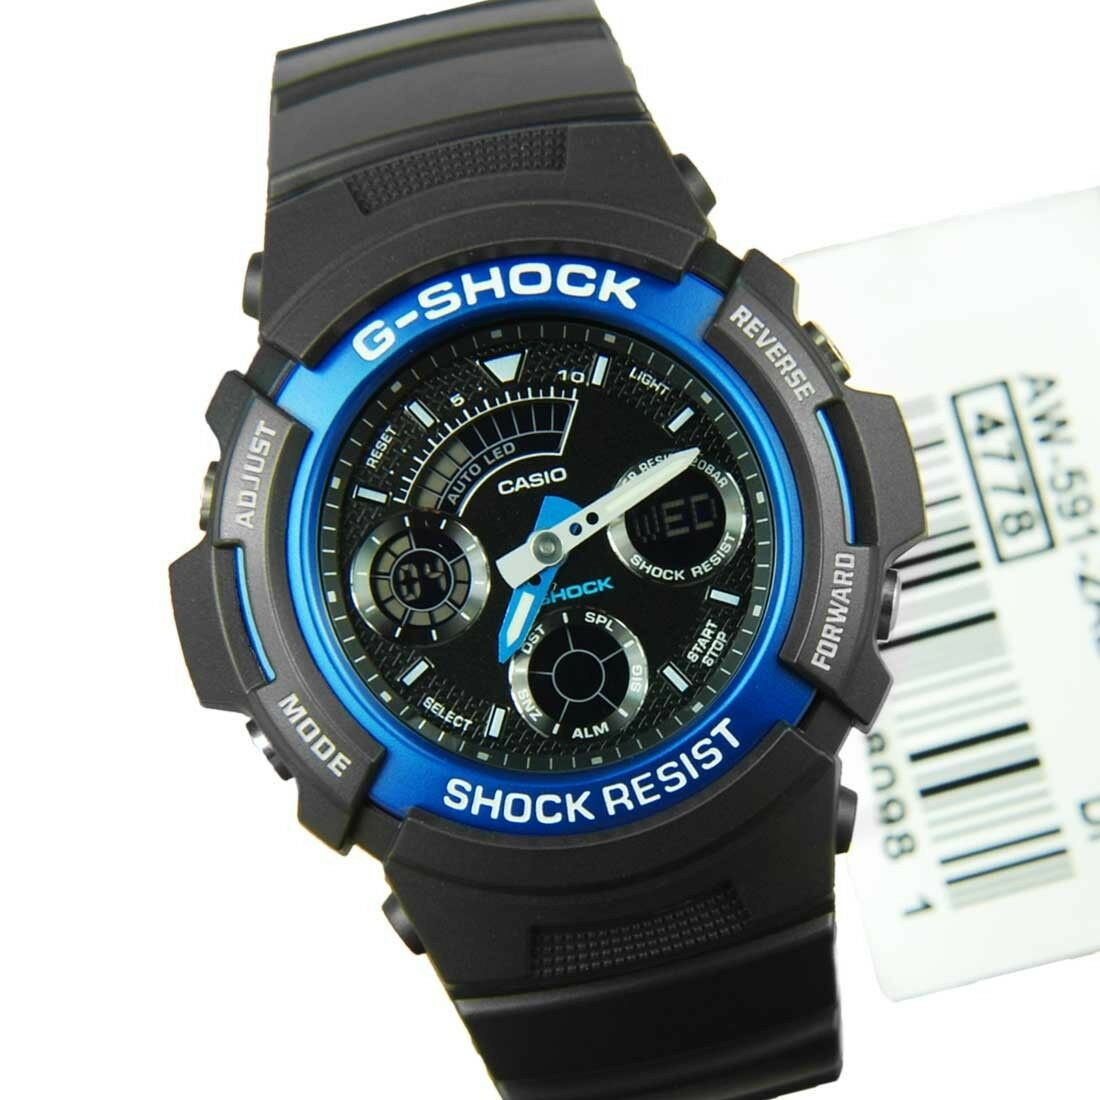 Casio G Shock Aw 591 2a New Chrono Analog Digital Mens Watch 200m Ga 110gw 7a 1 Of 4only Available